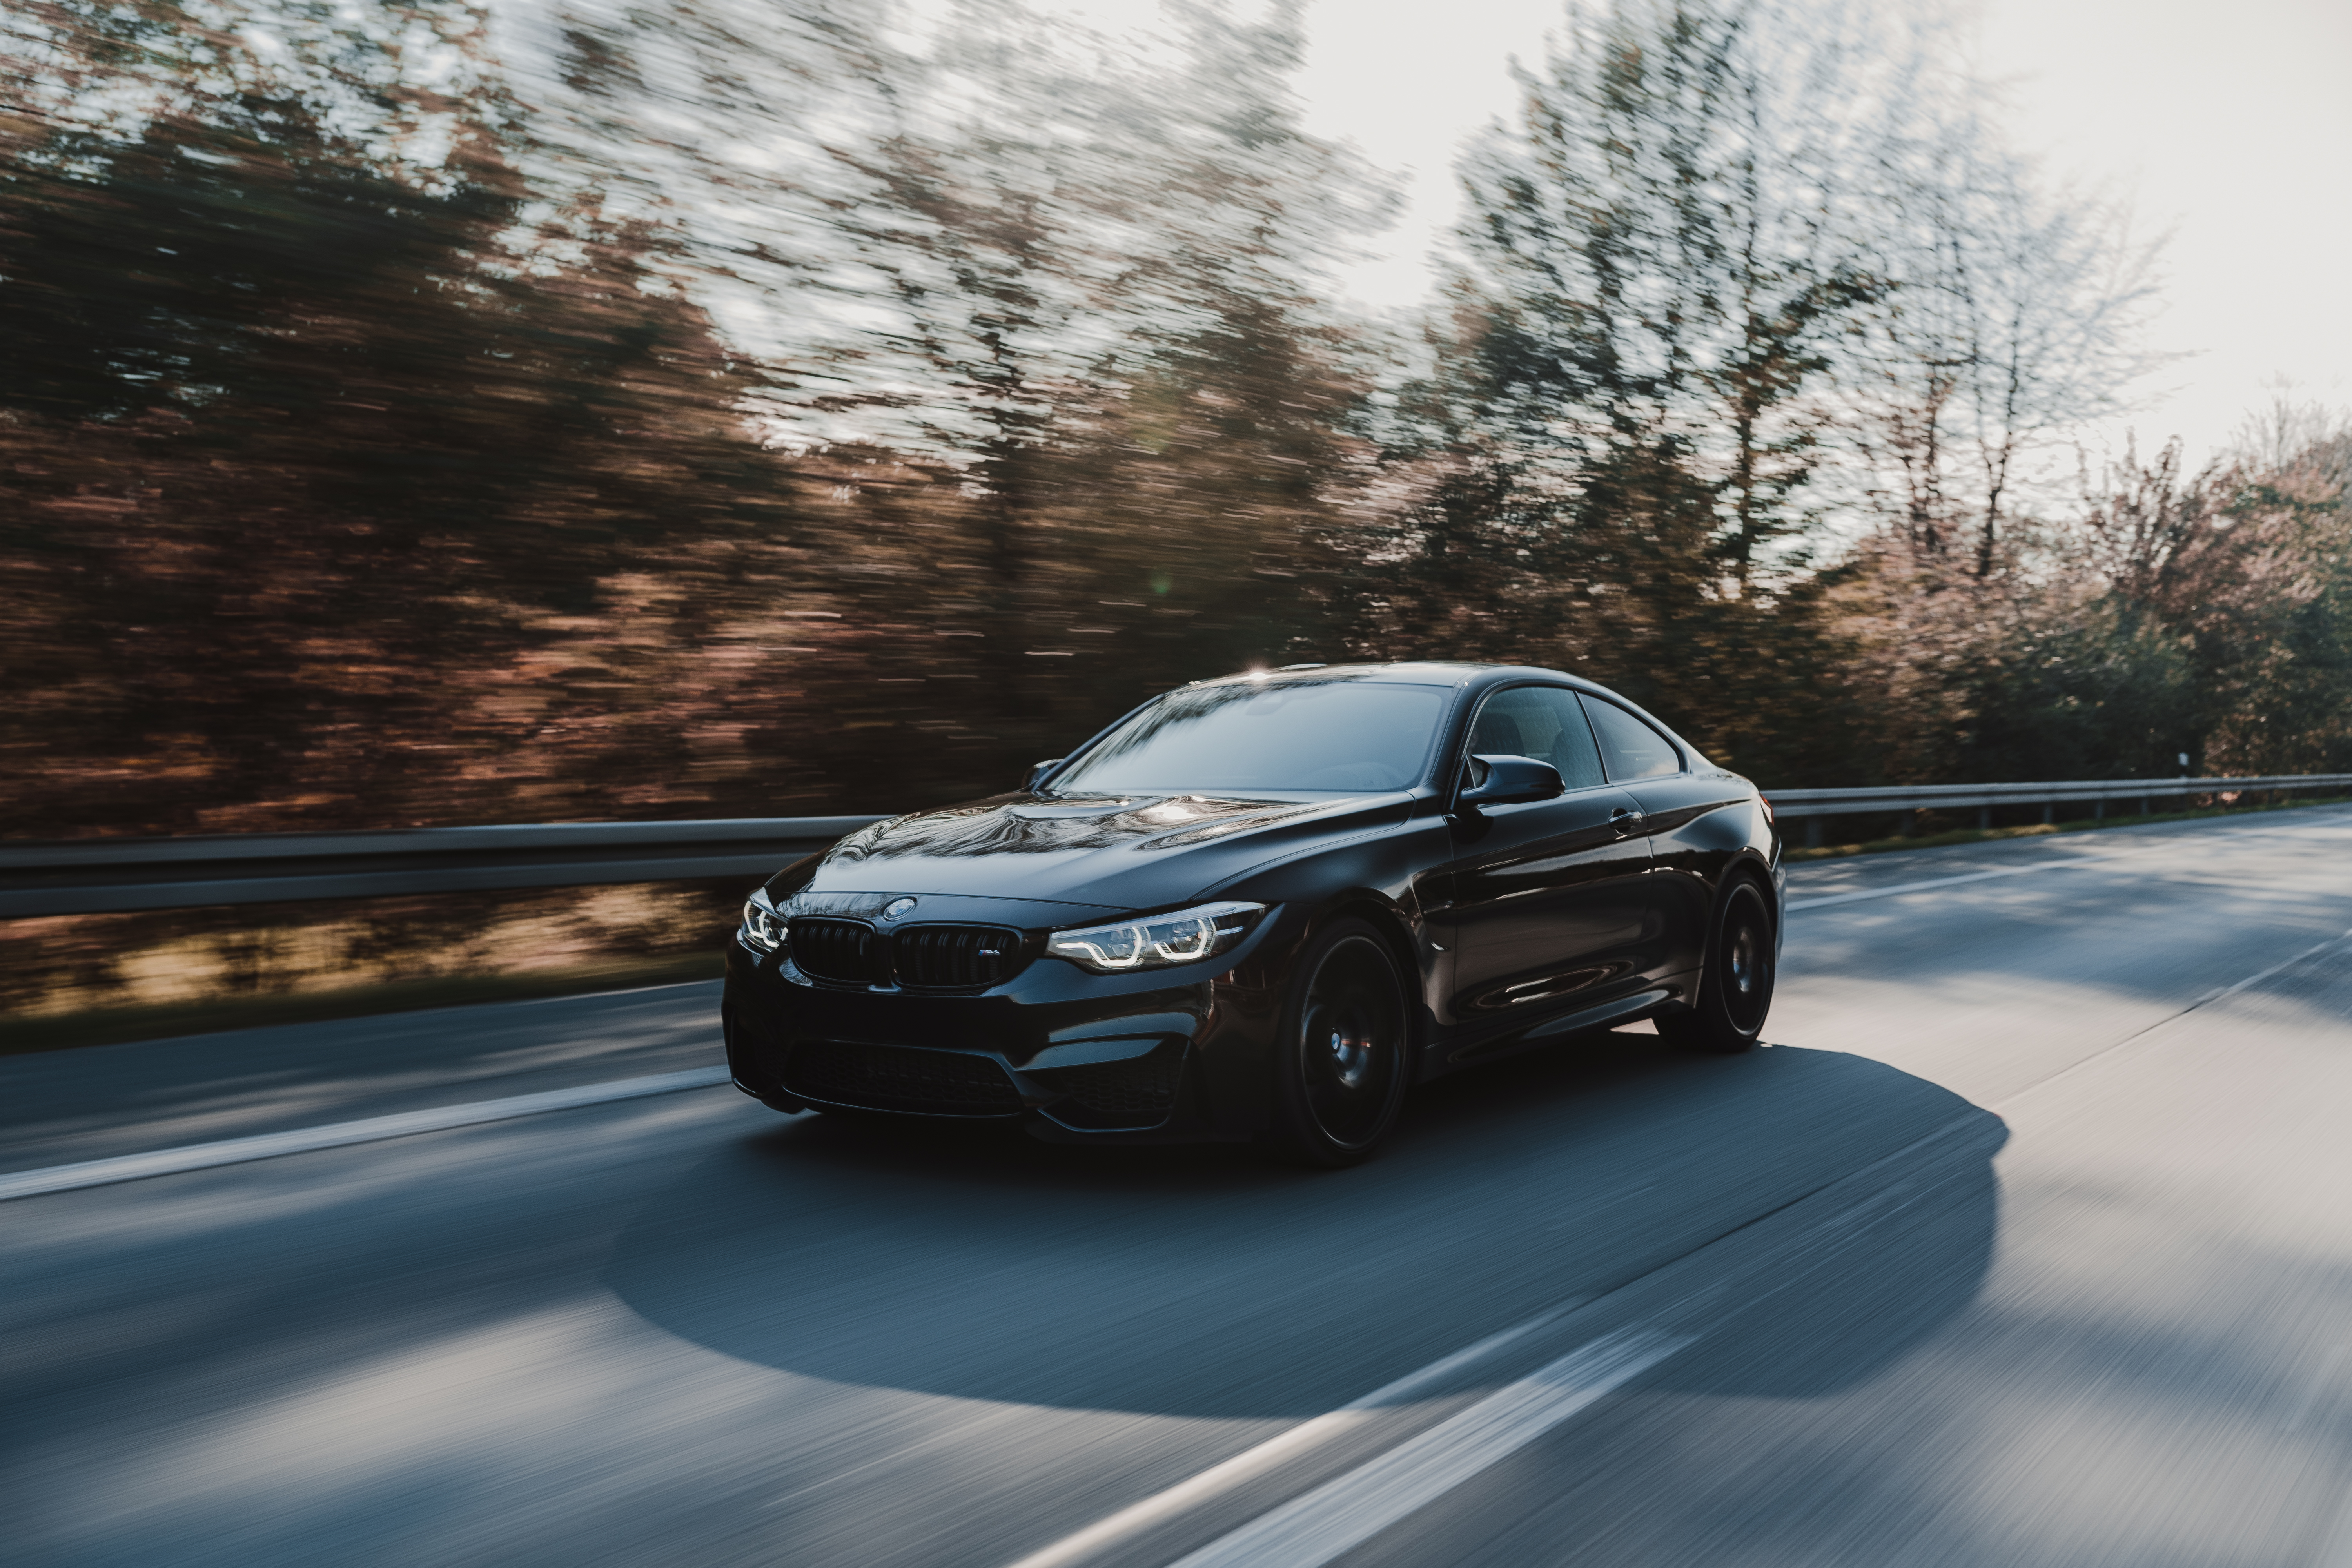 BMW Wallpapers Free HD Download [500 HQ]